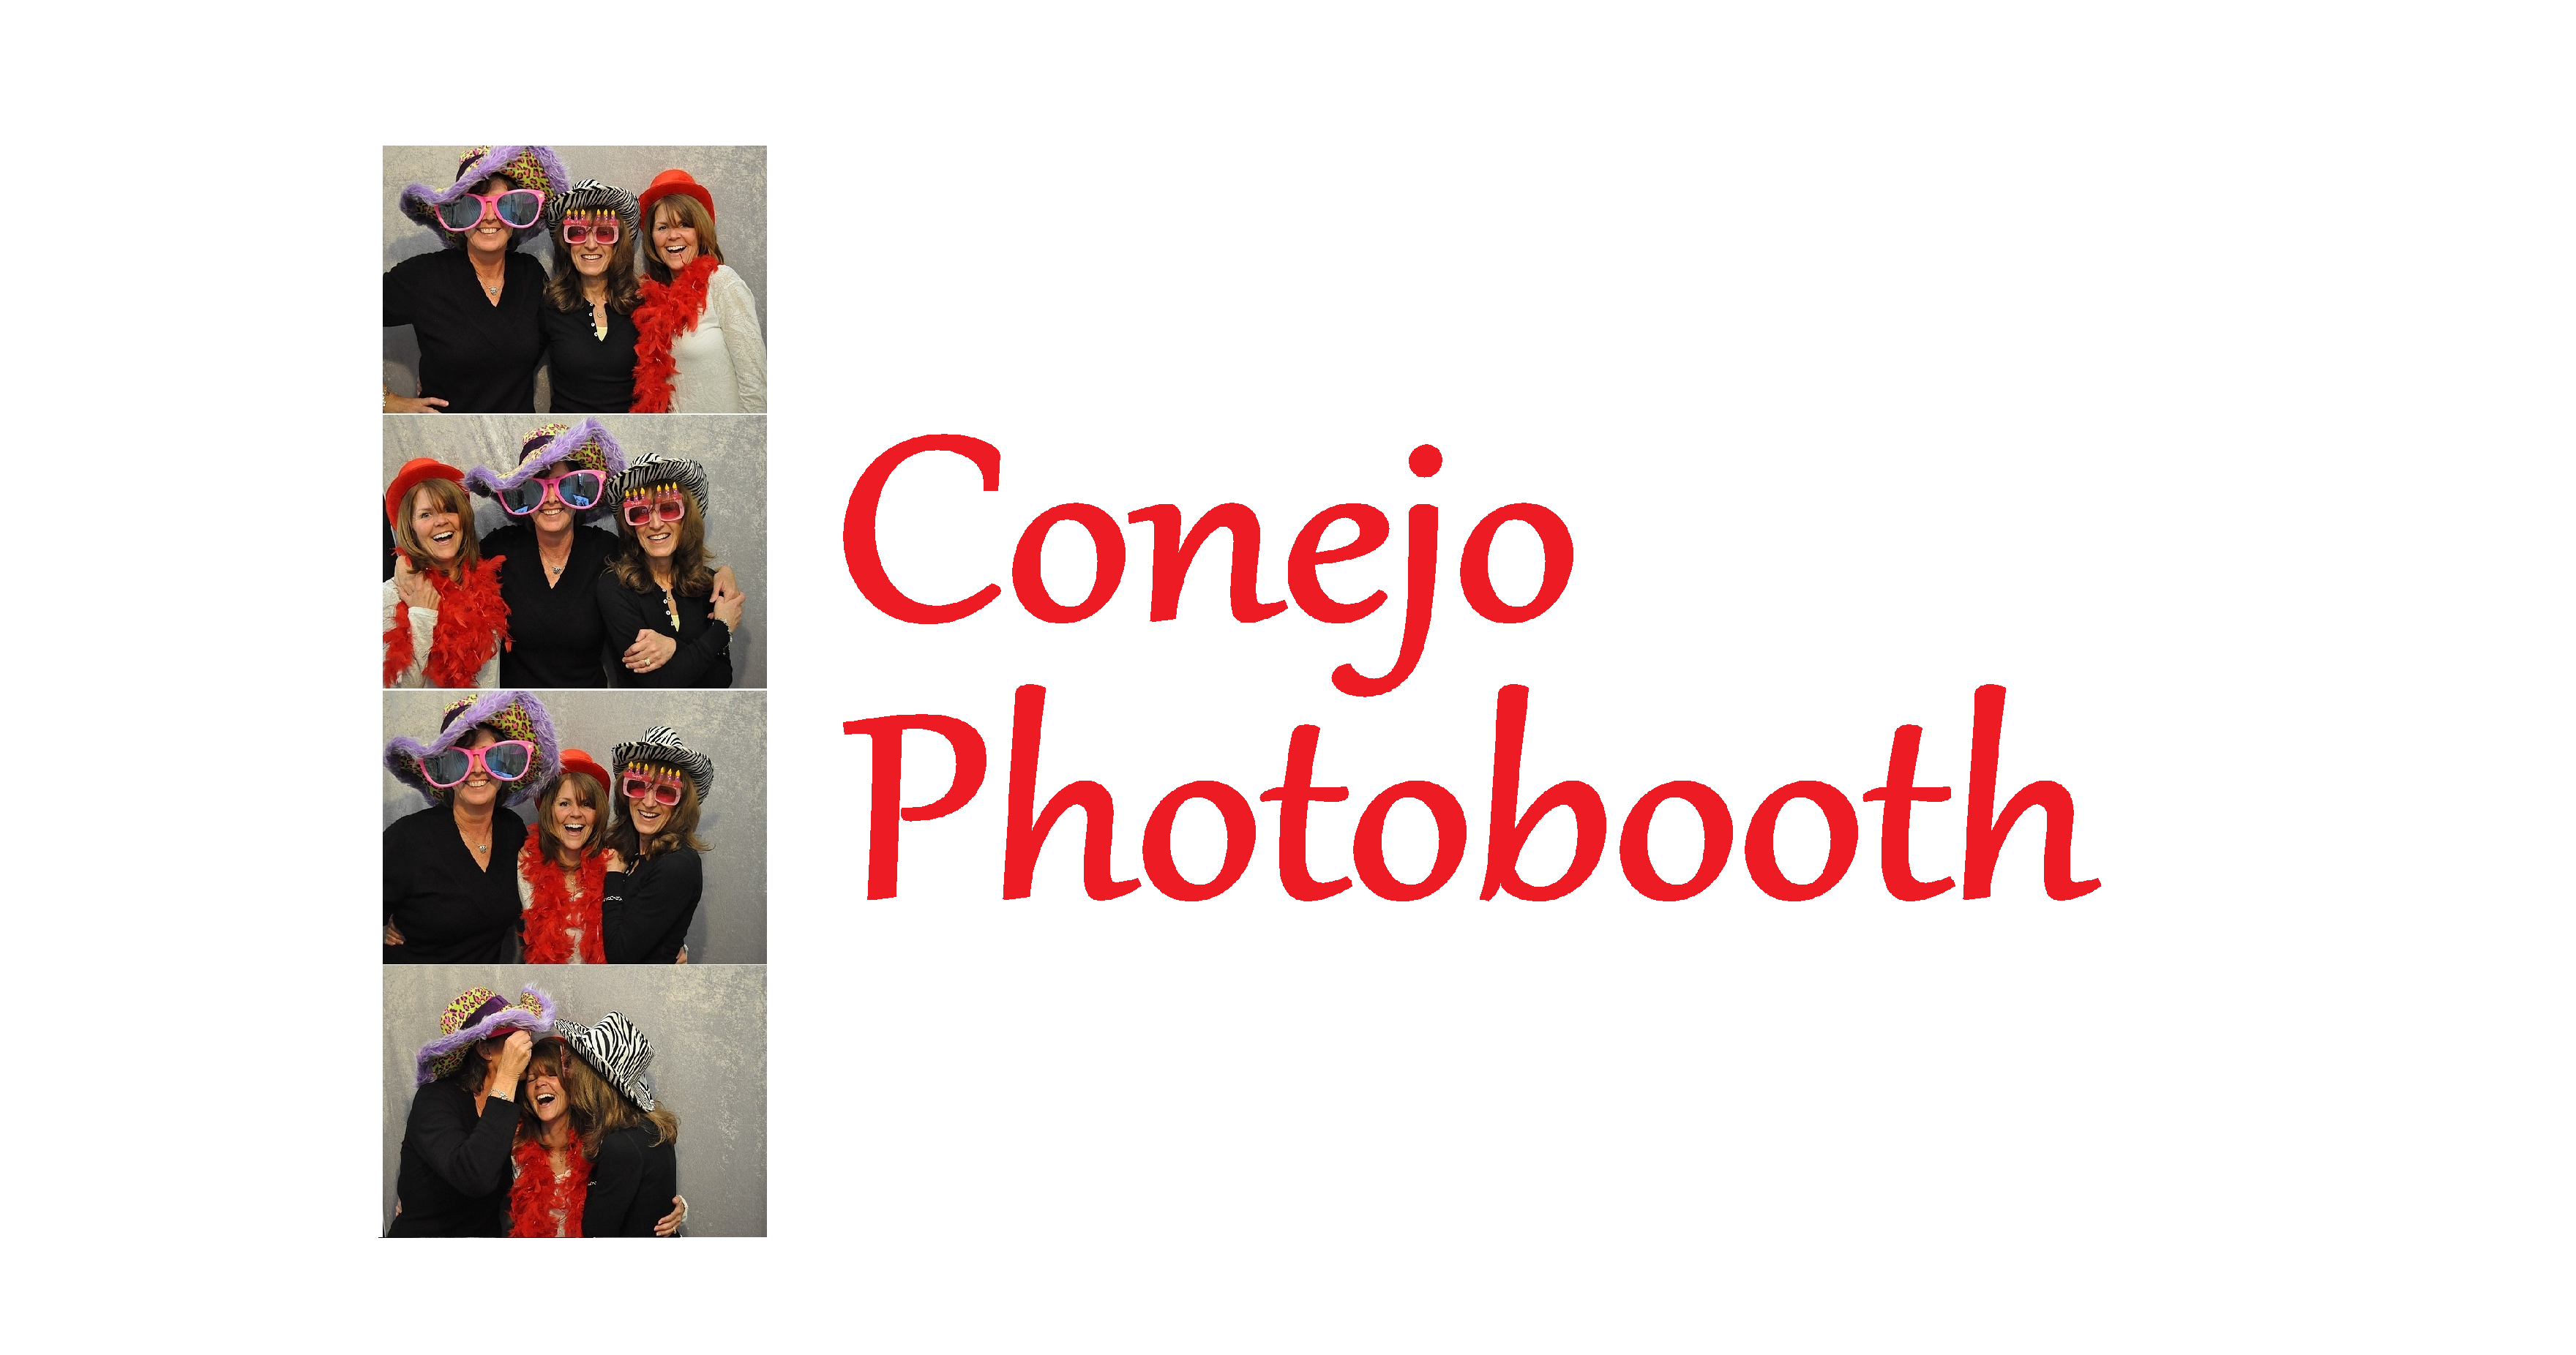 Conejo Photobooth